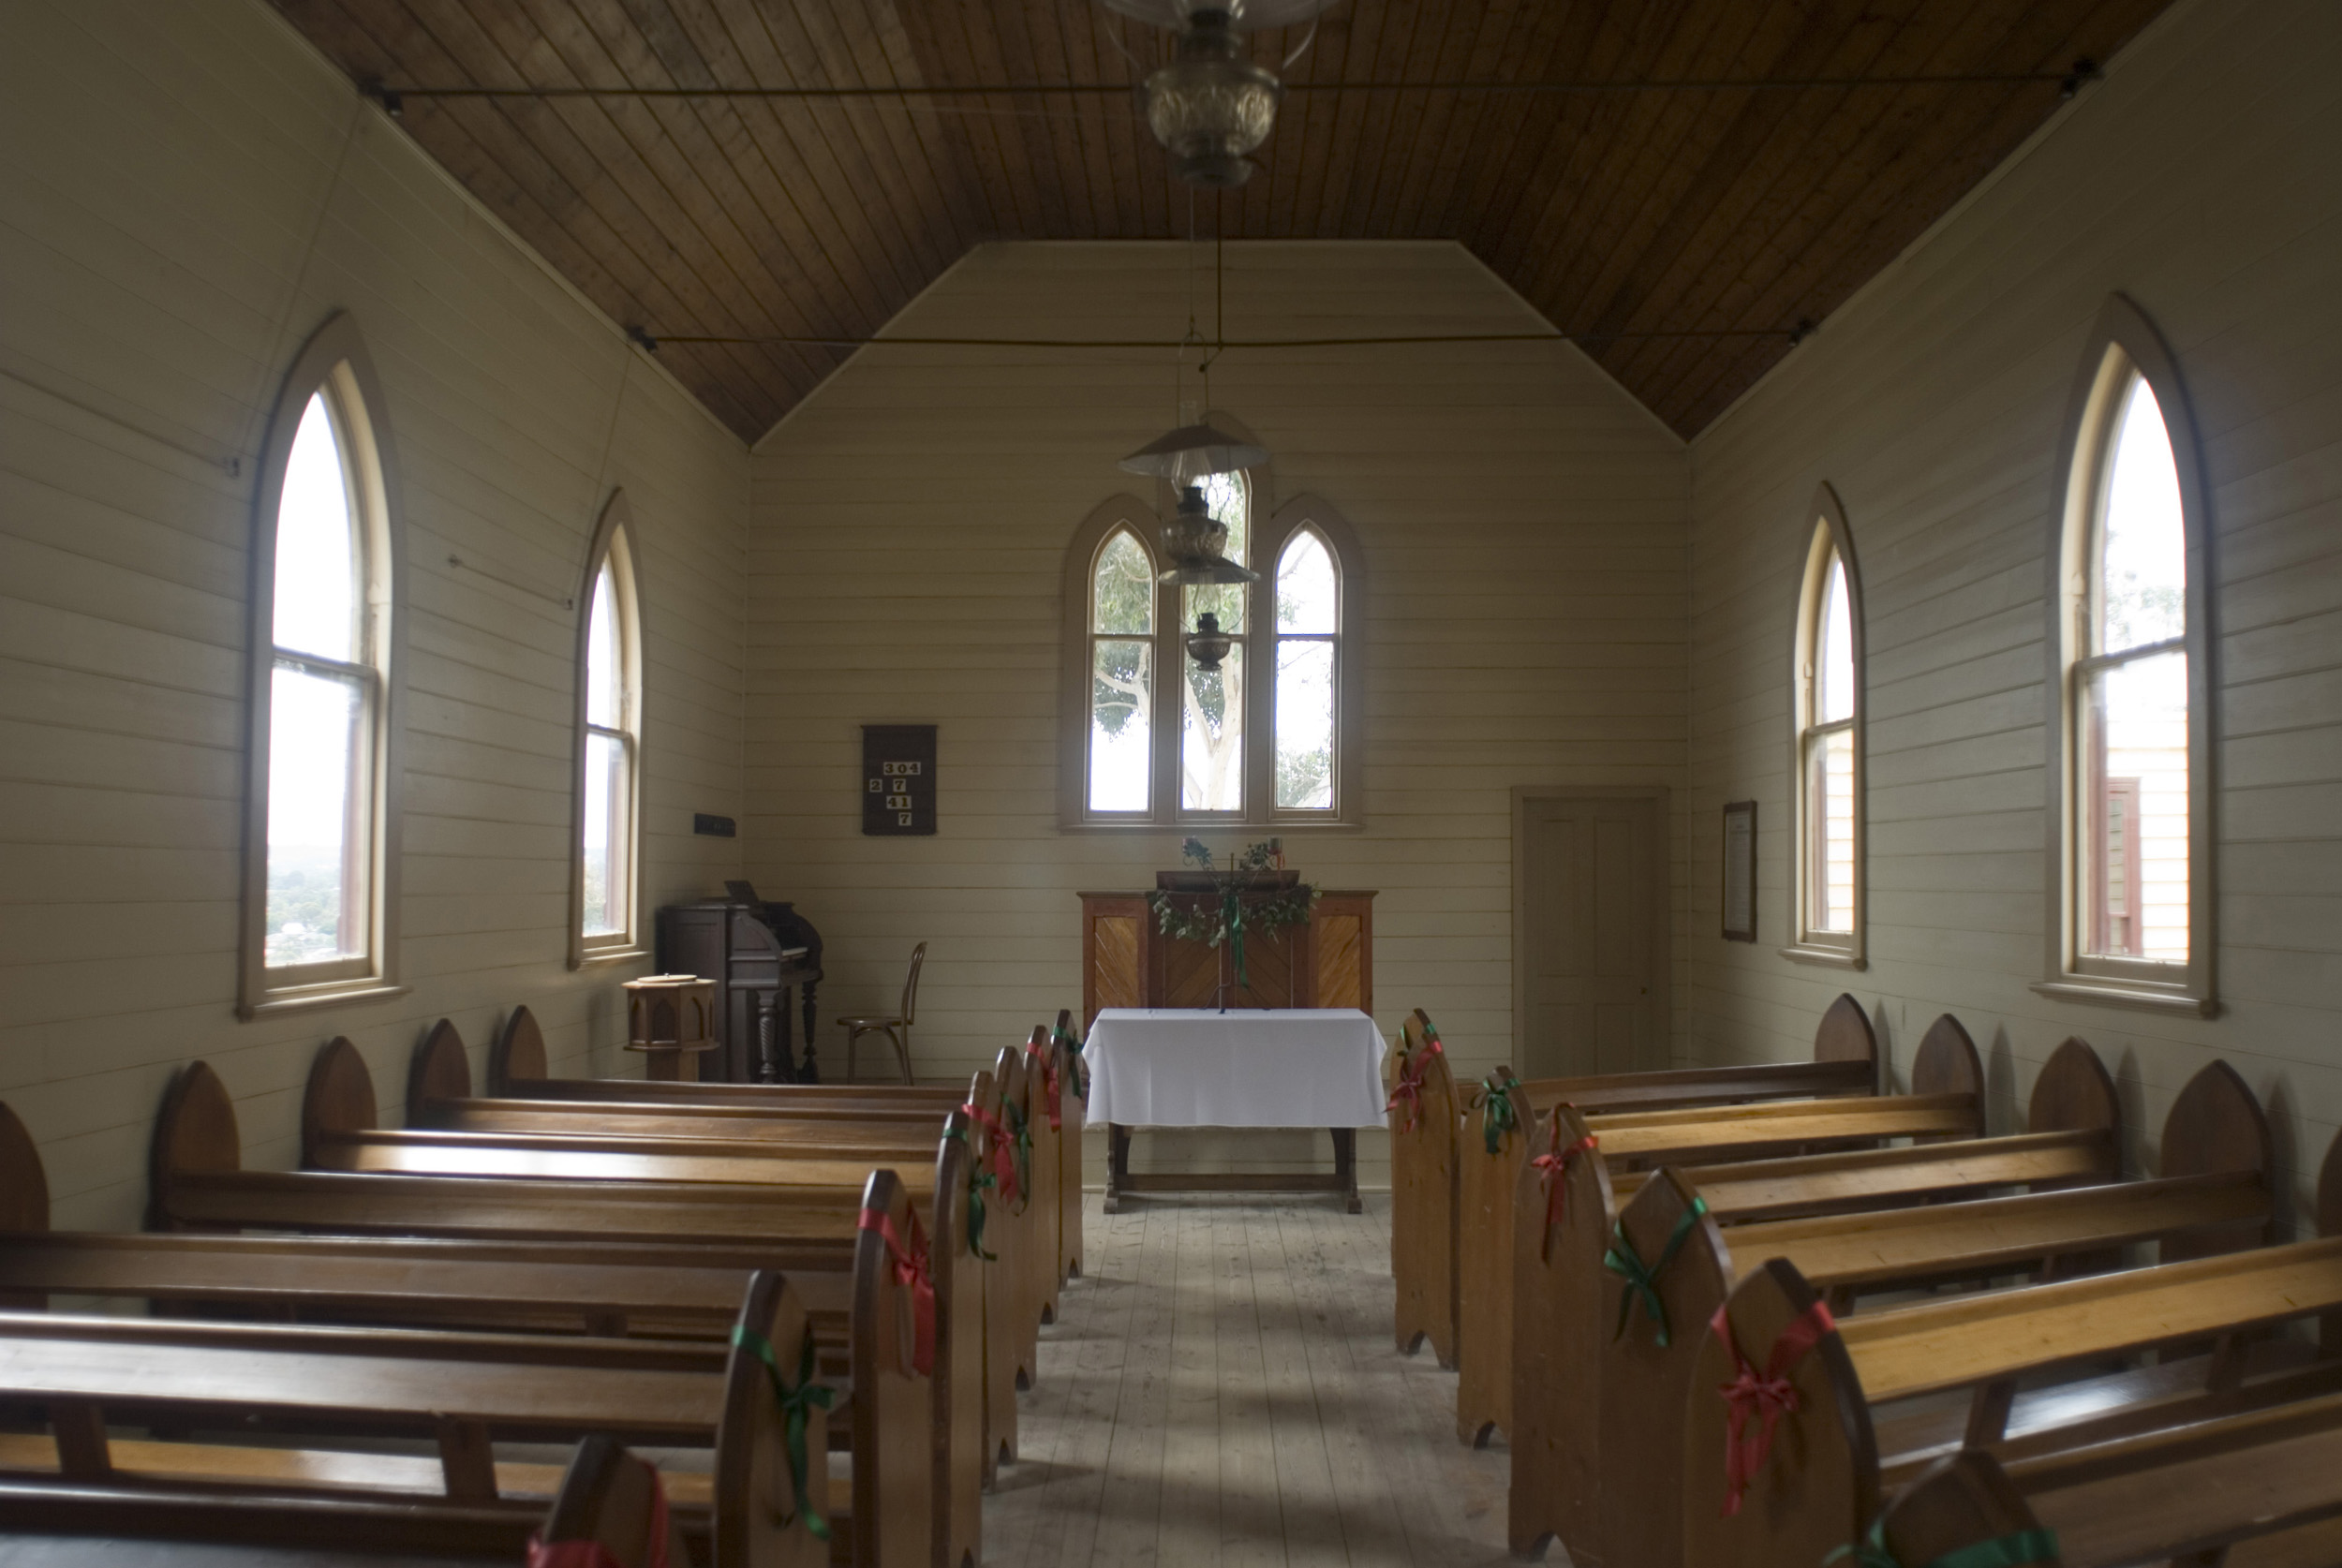 church_aisle.jpg - Aisle in rural church lined with old wooden pews leading to a simple altar